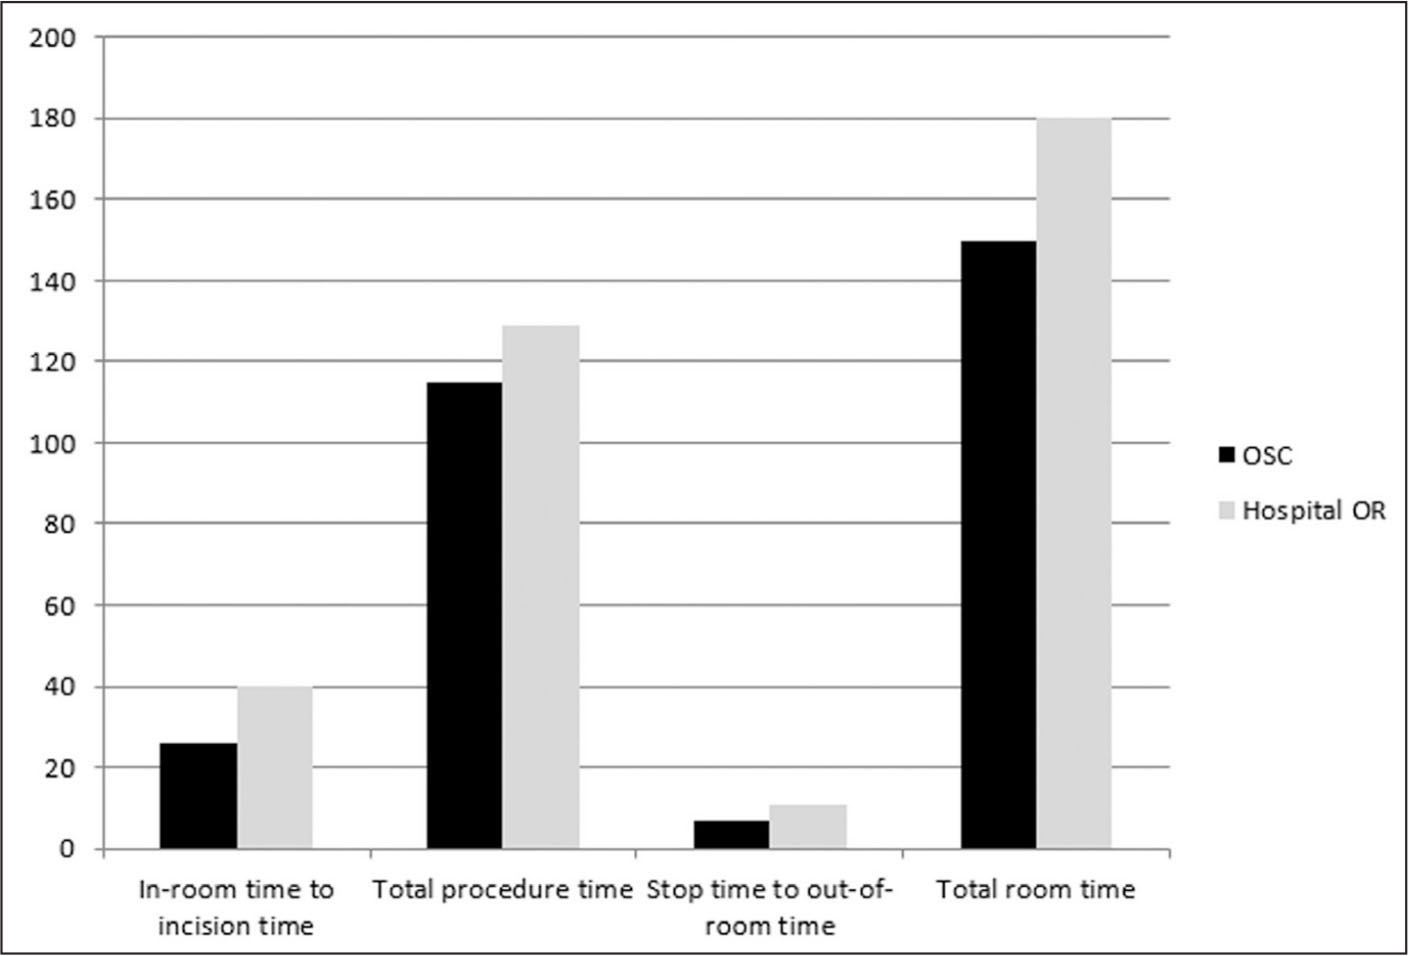 Comparison of mean time components (minutes) between the outpatient surgical center (OSC) and the hospital operating room (OR). Total OR time was broken into 3 distinct time periods: in-room to incision time, total procedure time, and stop time to out-of-room time. All time components were found to be shorter at the OSC (P<.05).